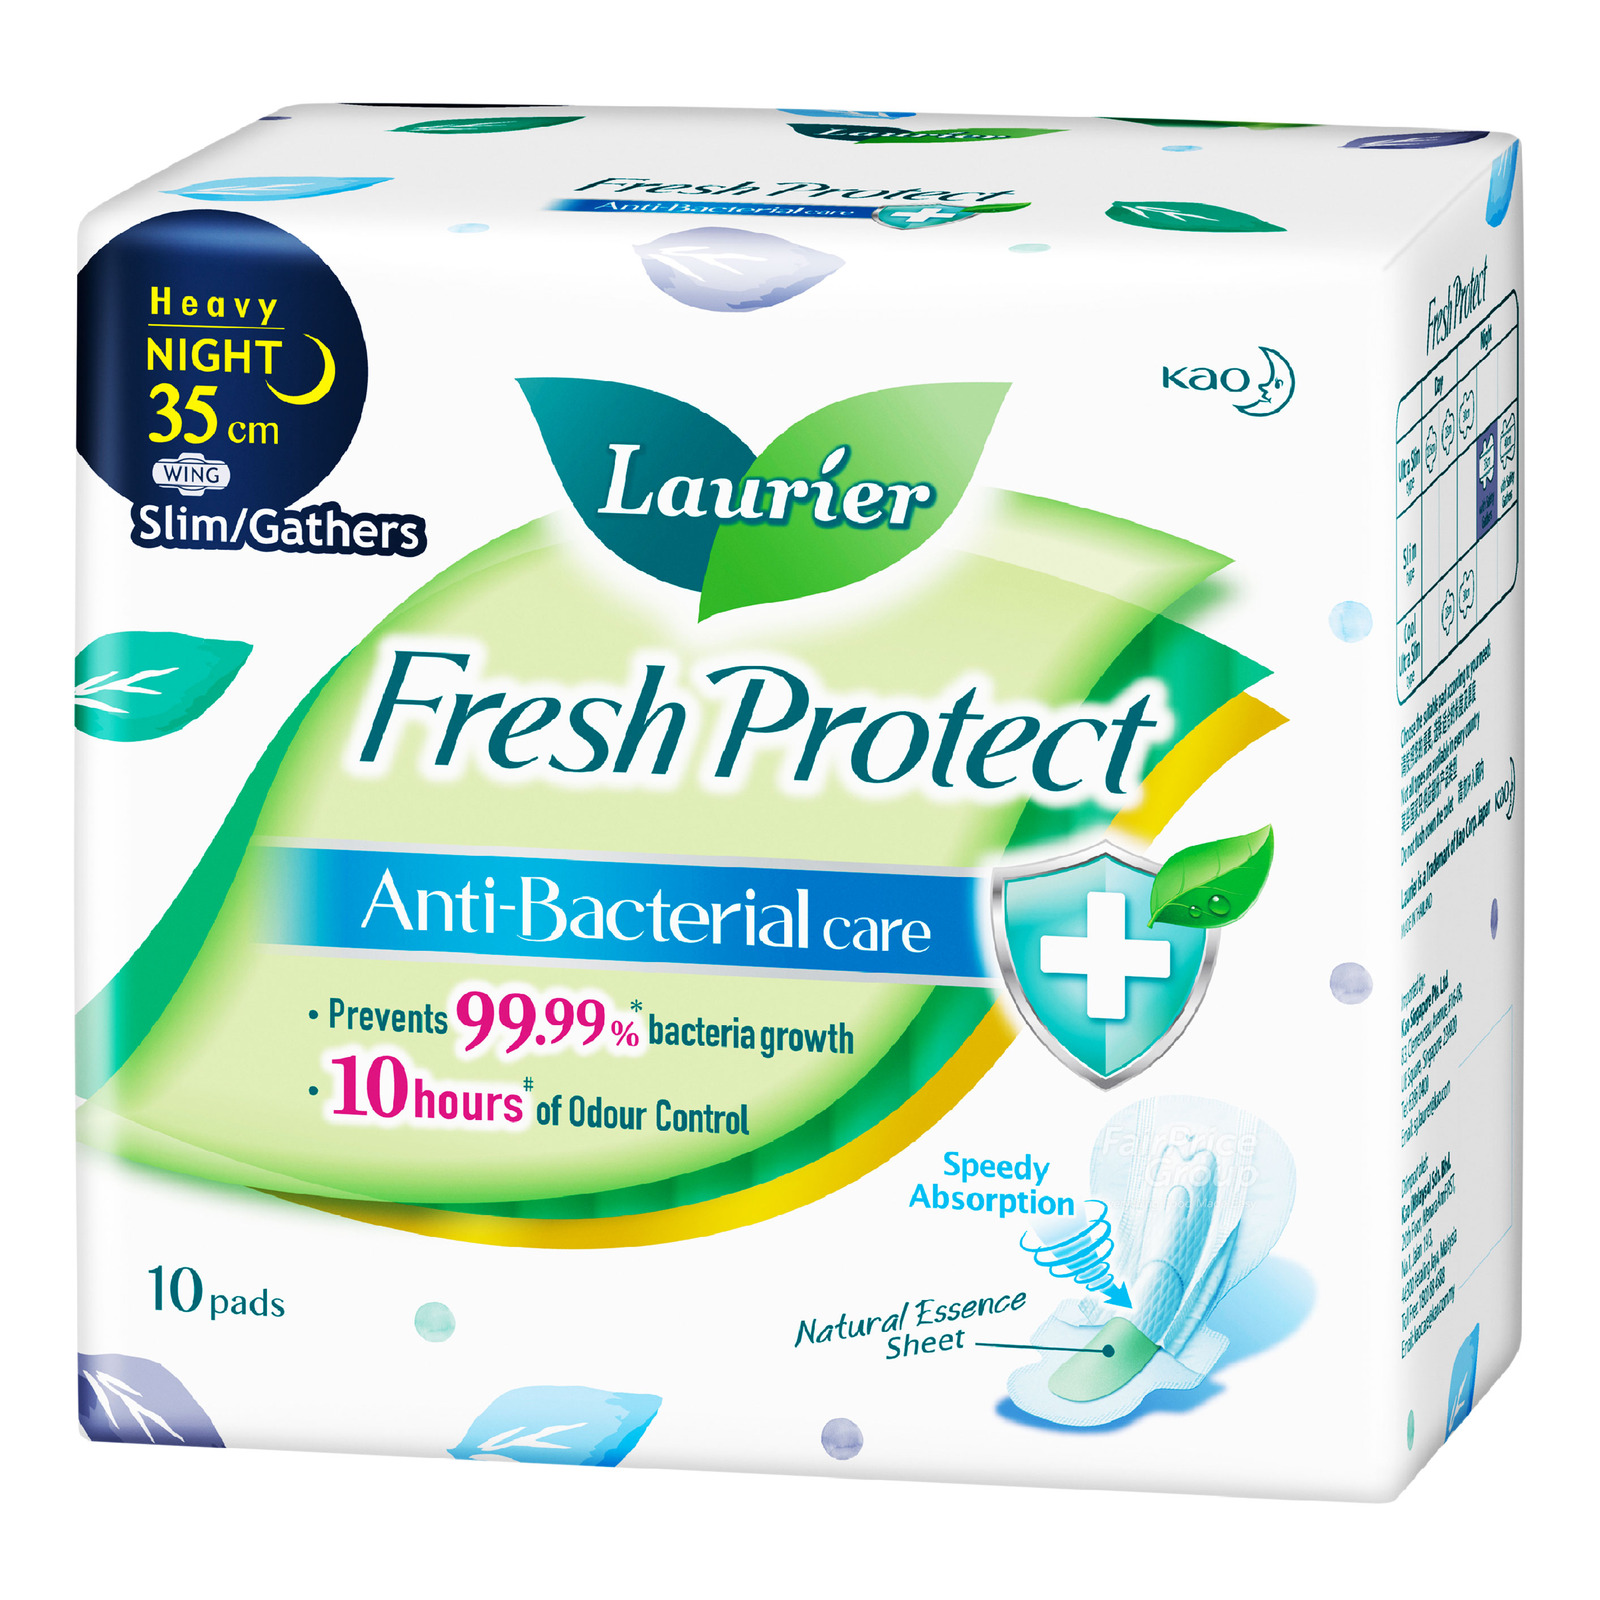 Laurier Fresh Protect Pads - Heavy Night Slim (35cm)